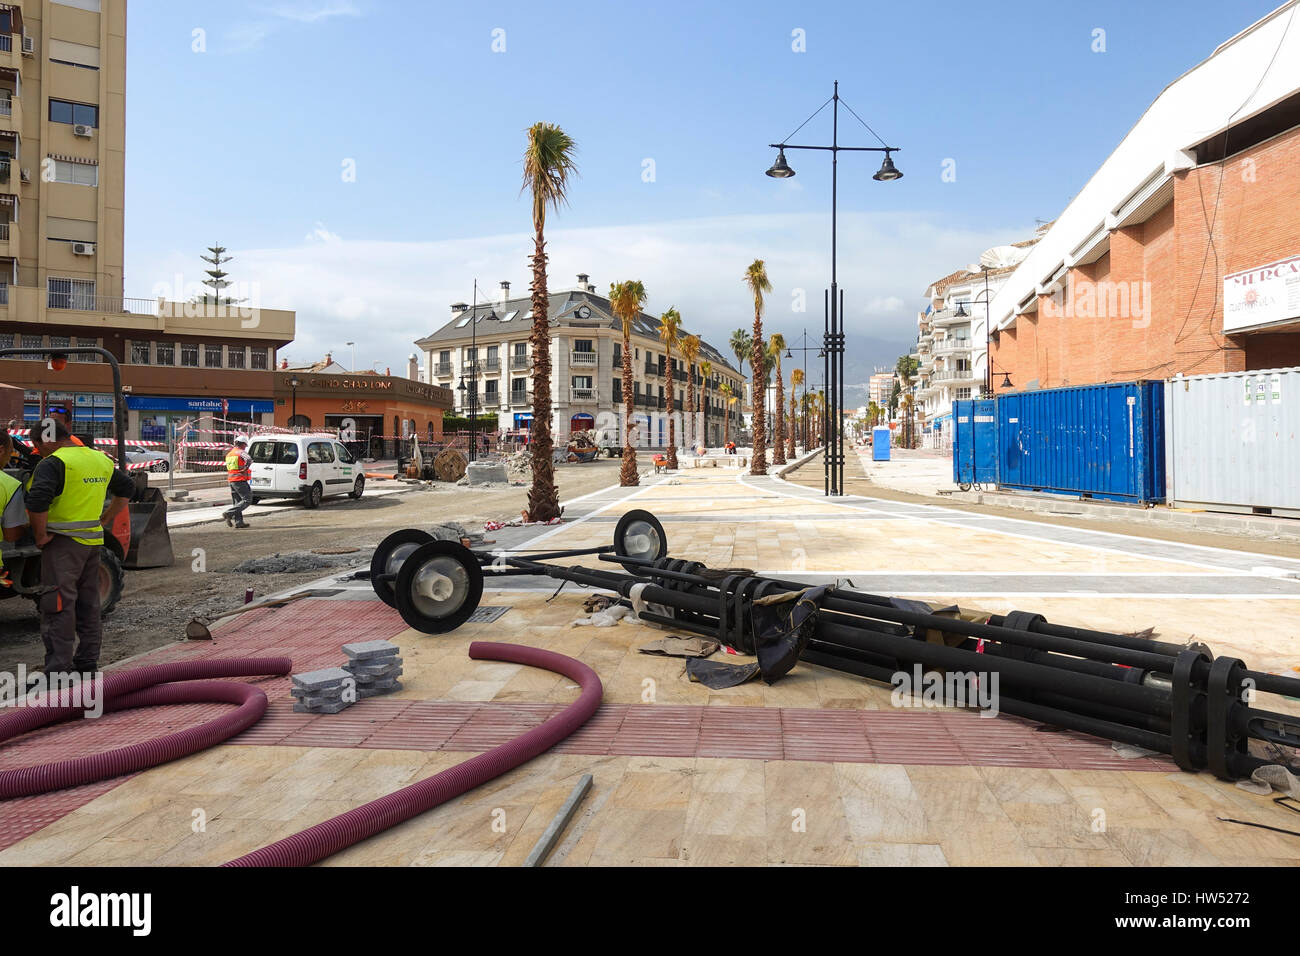 Street under construction, infrastructure, urban planning, Fuengirola, Spain. - Stock Image